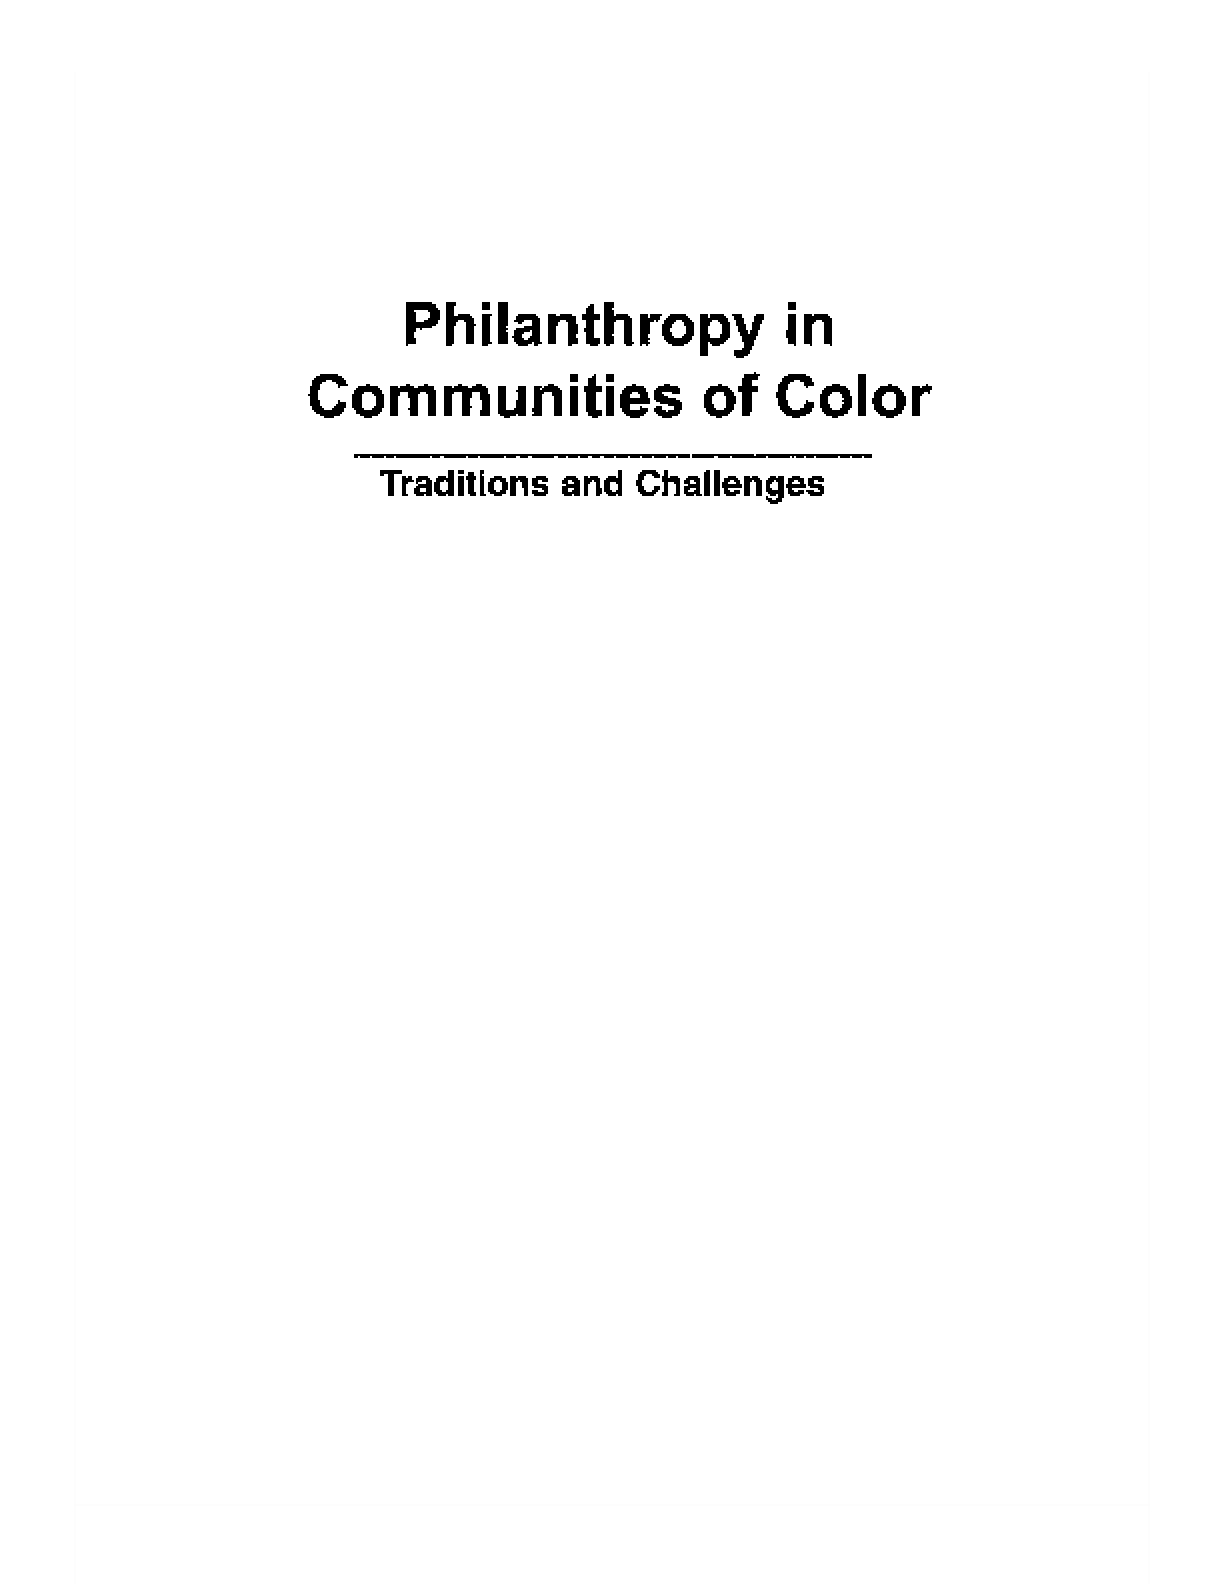 Philanthropy in Communities of Color - Traditions and Challenges